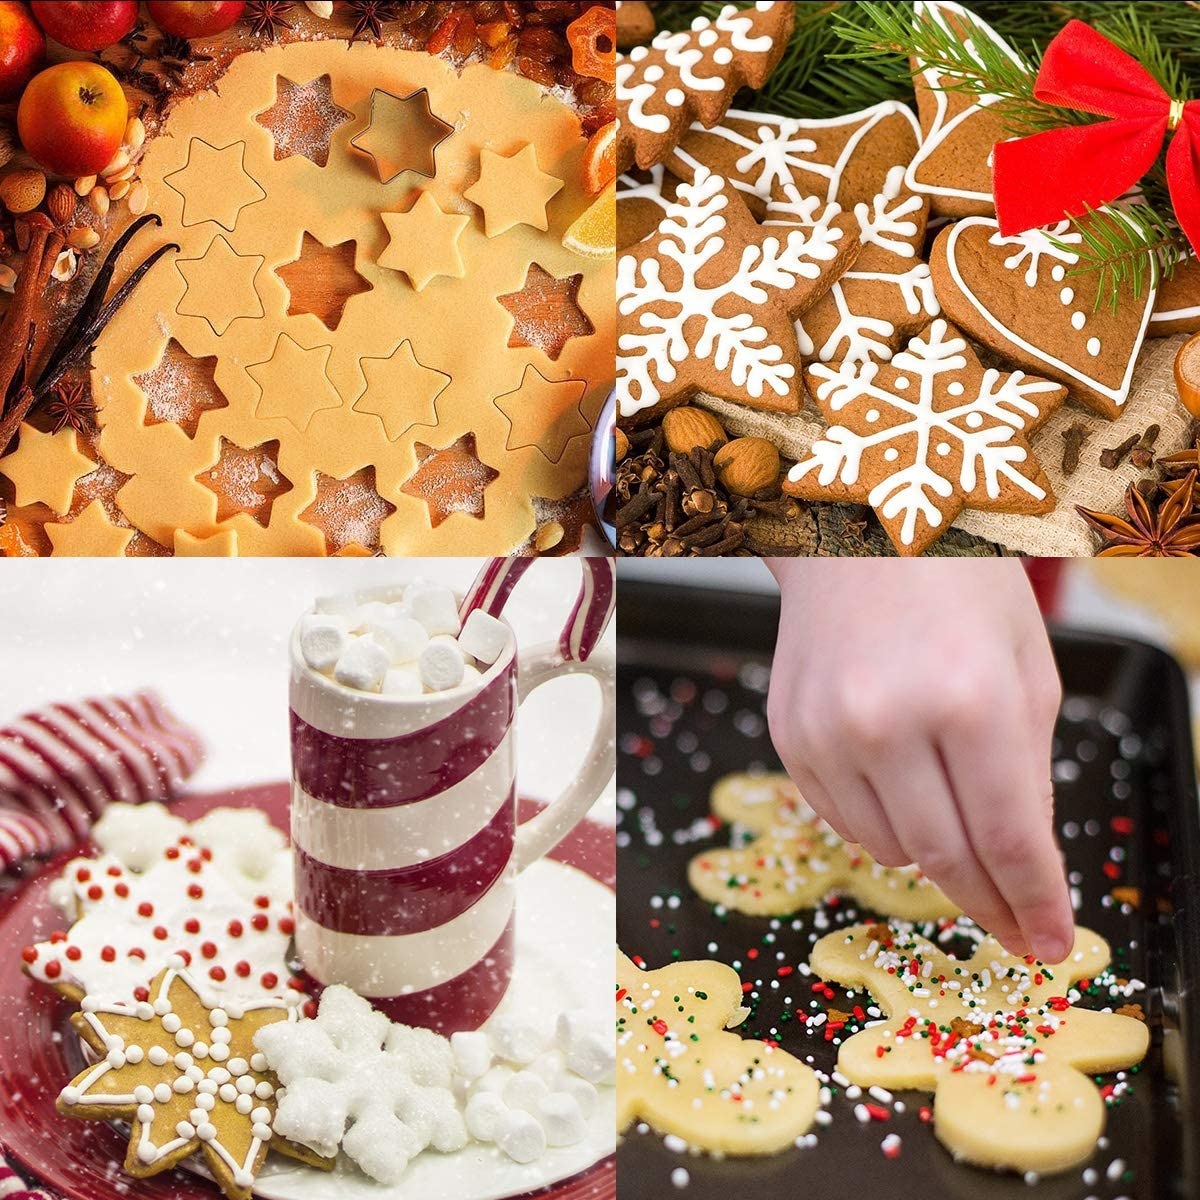 Christmas Cookie Cutters, Stainless Steel Biscuit Mold with Comfort Grip for Christmas Party Baking Gift 12 Pcs